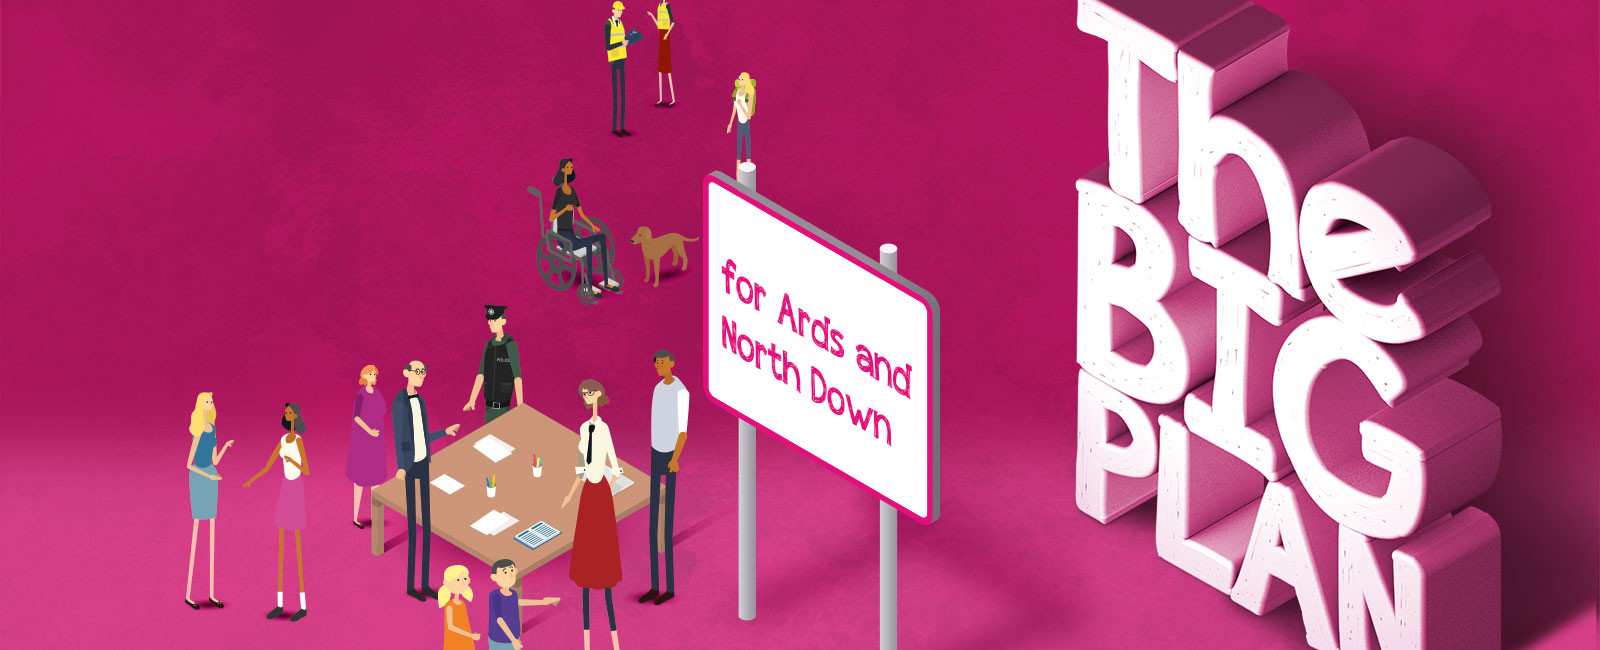 Ards & North Down Borough Council: The Big Plan initiative